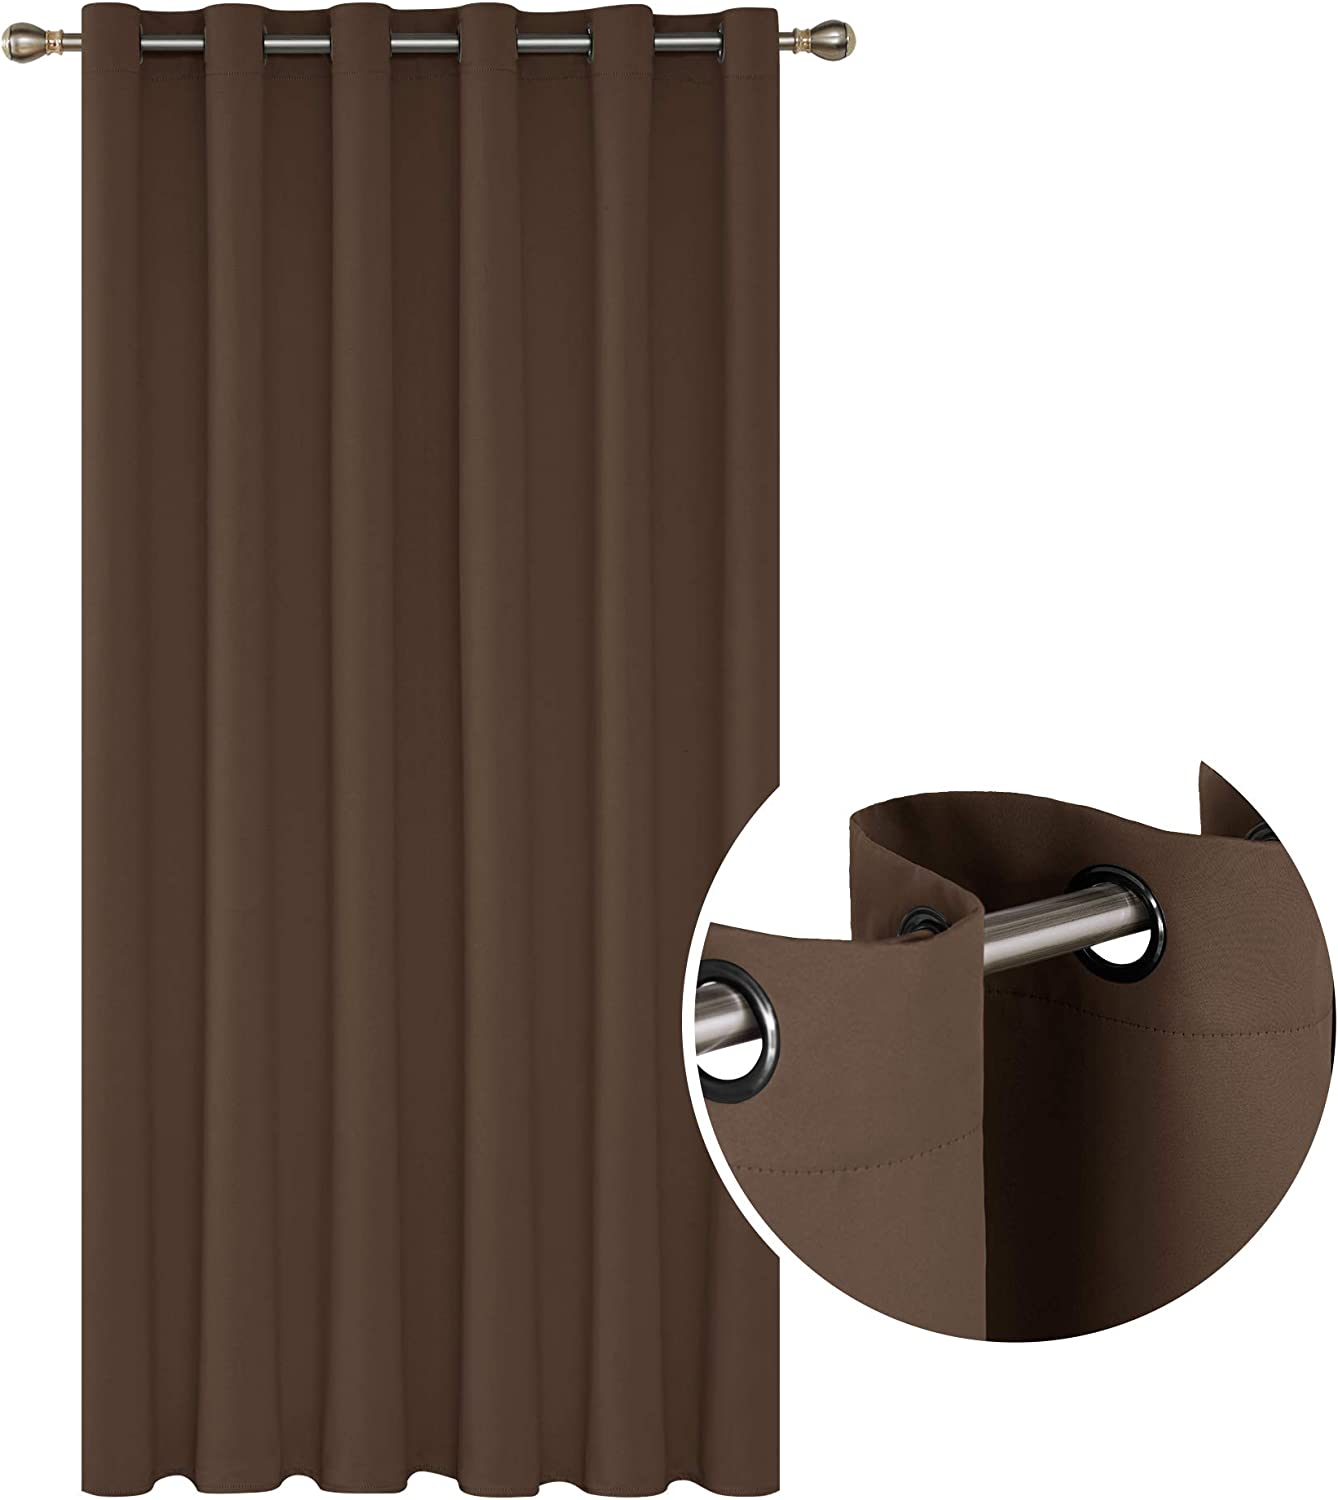 Deconovo Decorative Thermal Insulated Blackout Curtain Grommet Window Curtains Room Divider Curtain for Kids Room 80 x 84 Inch Brown 1 Drape